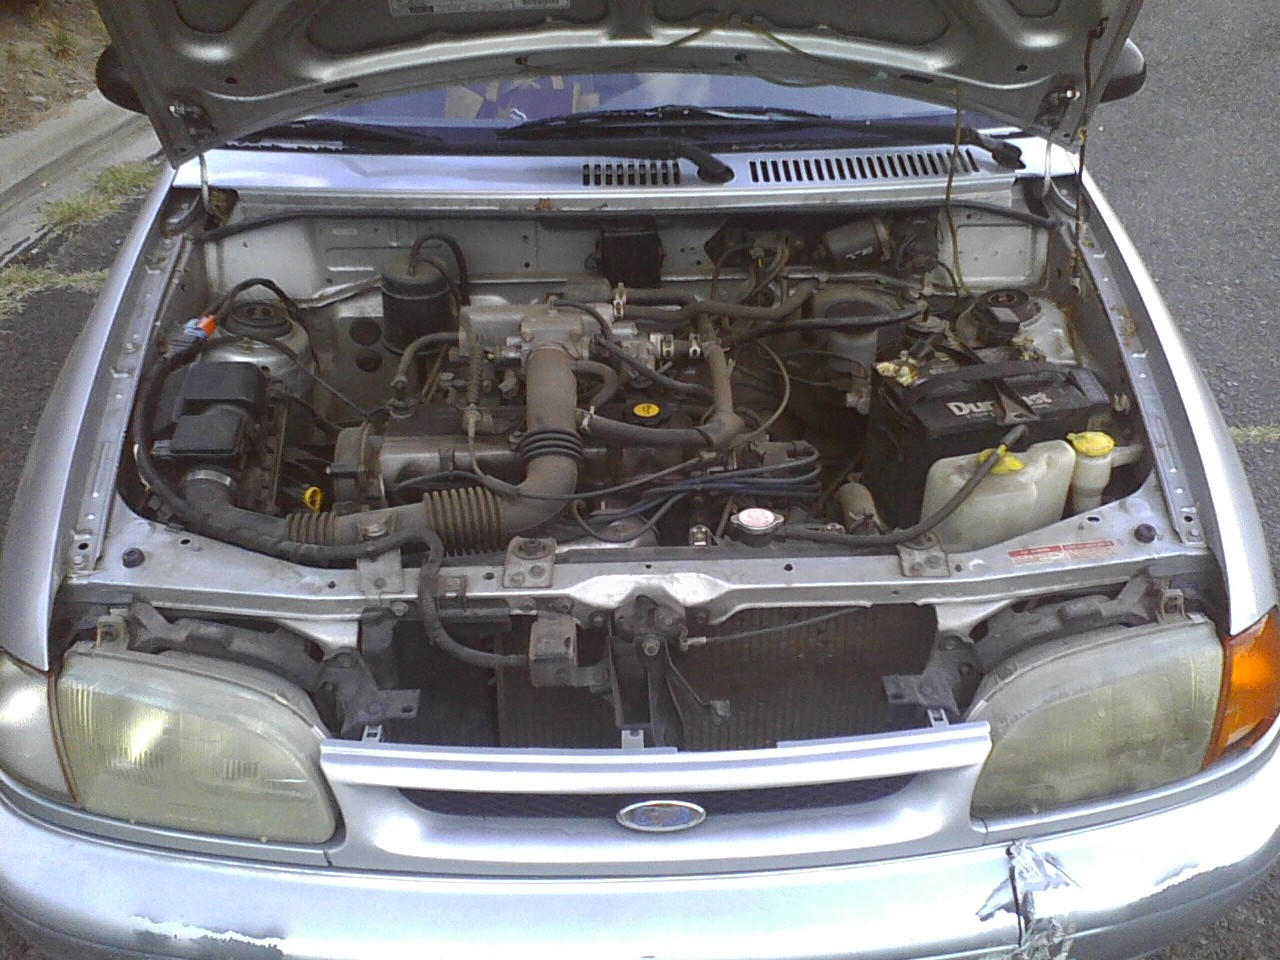 FORD ASPIRE engine